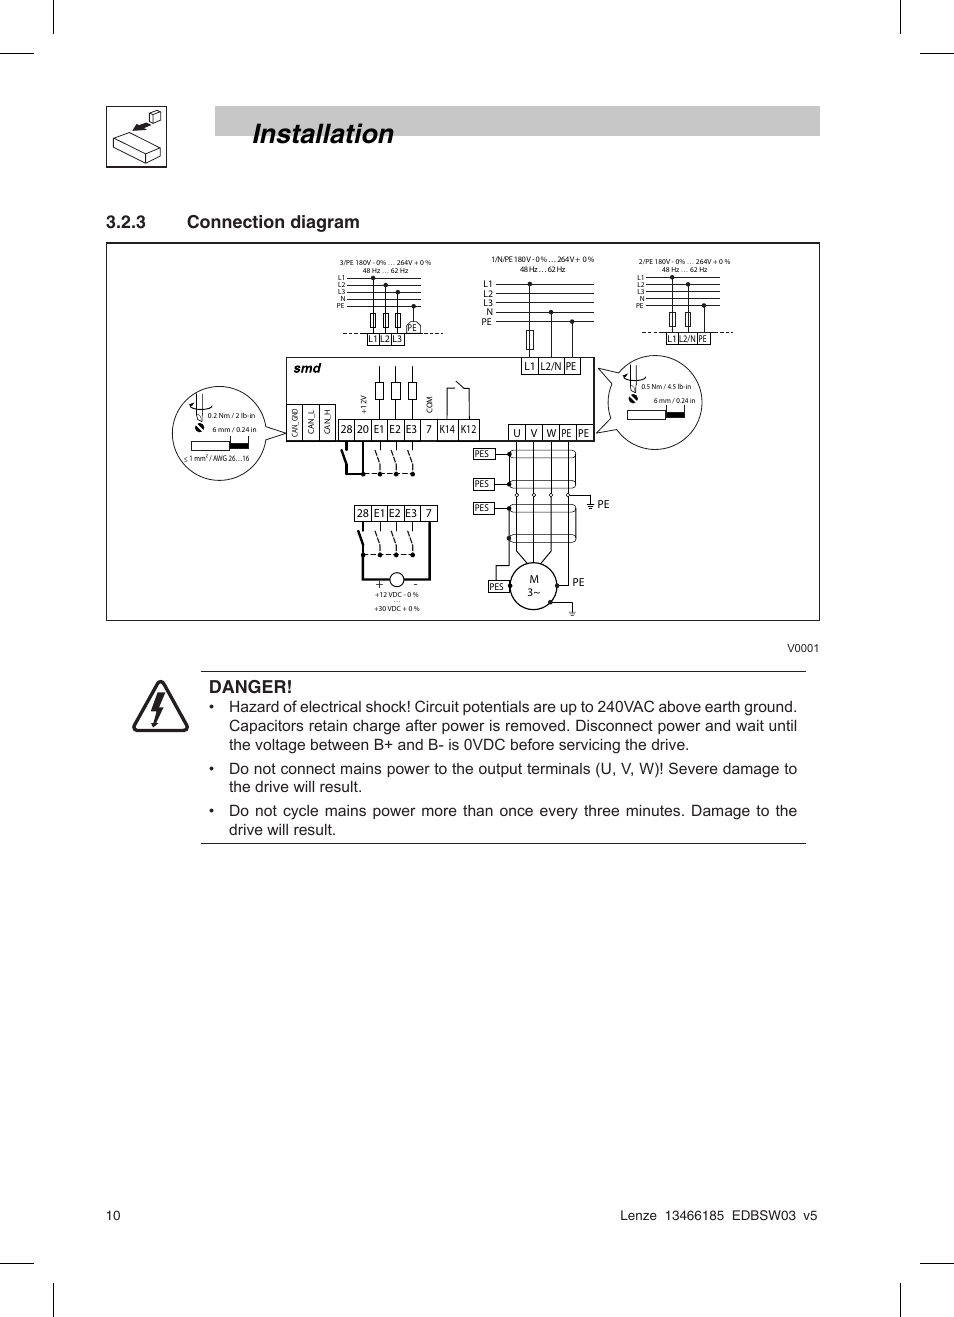 Power Sentry Emergency Ballast Wiring Diagram